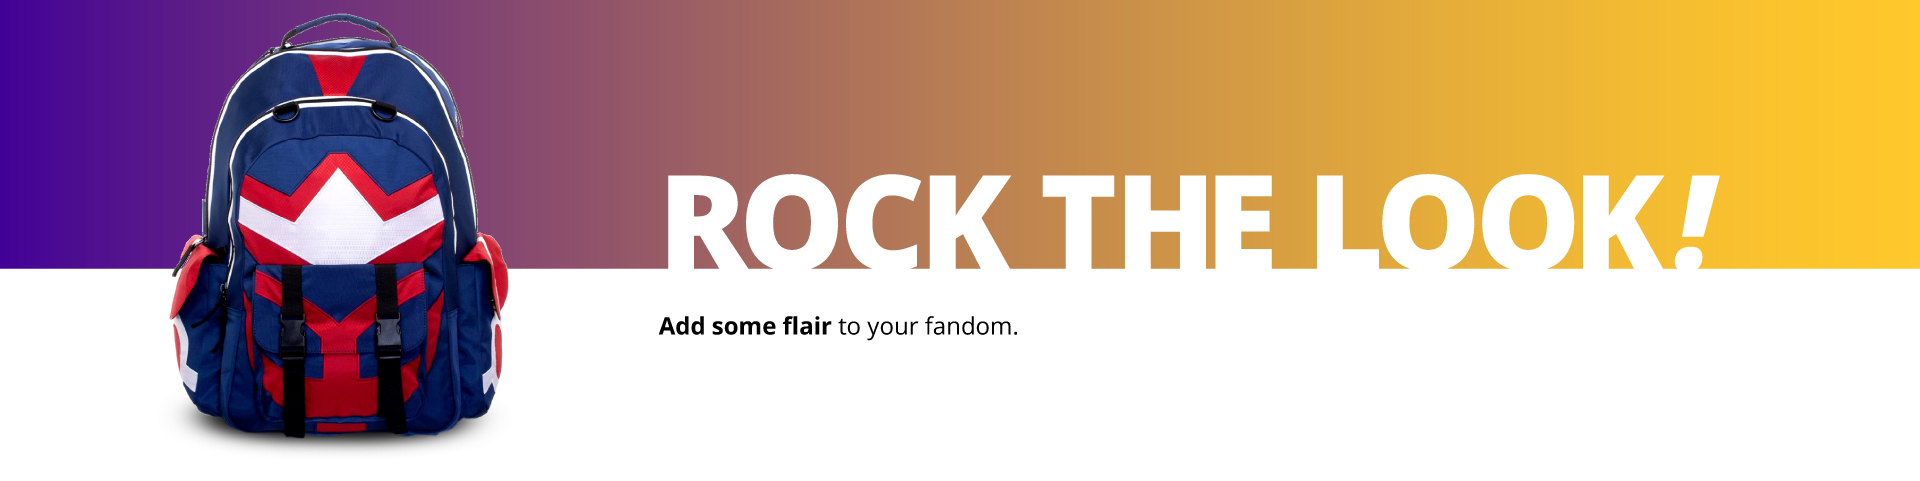 Rock The Look! Add some flair to your fandom.